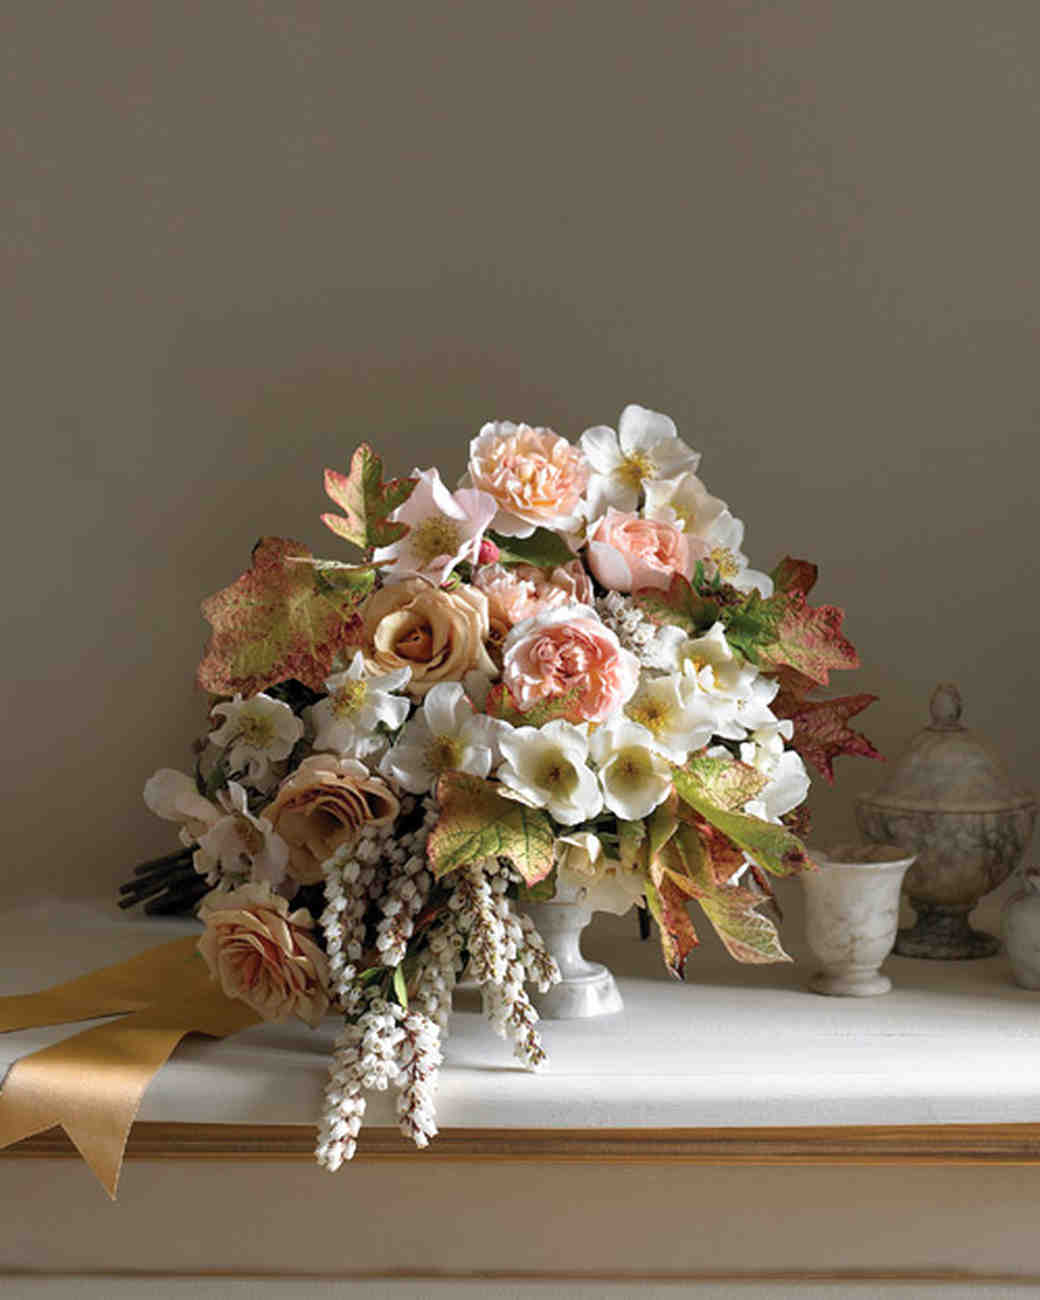 Ideas For Wedding Flower Arrangements: Classic Wedding Floral Arrangements